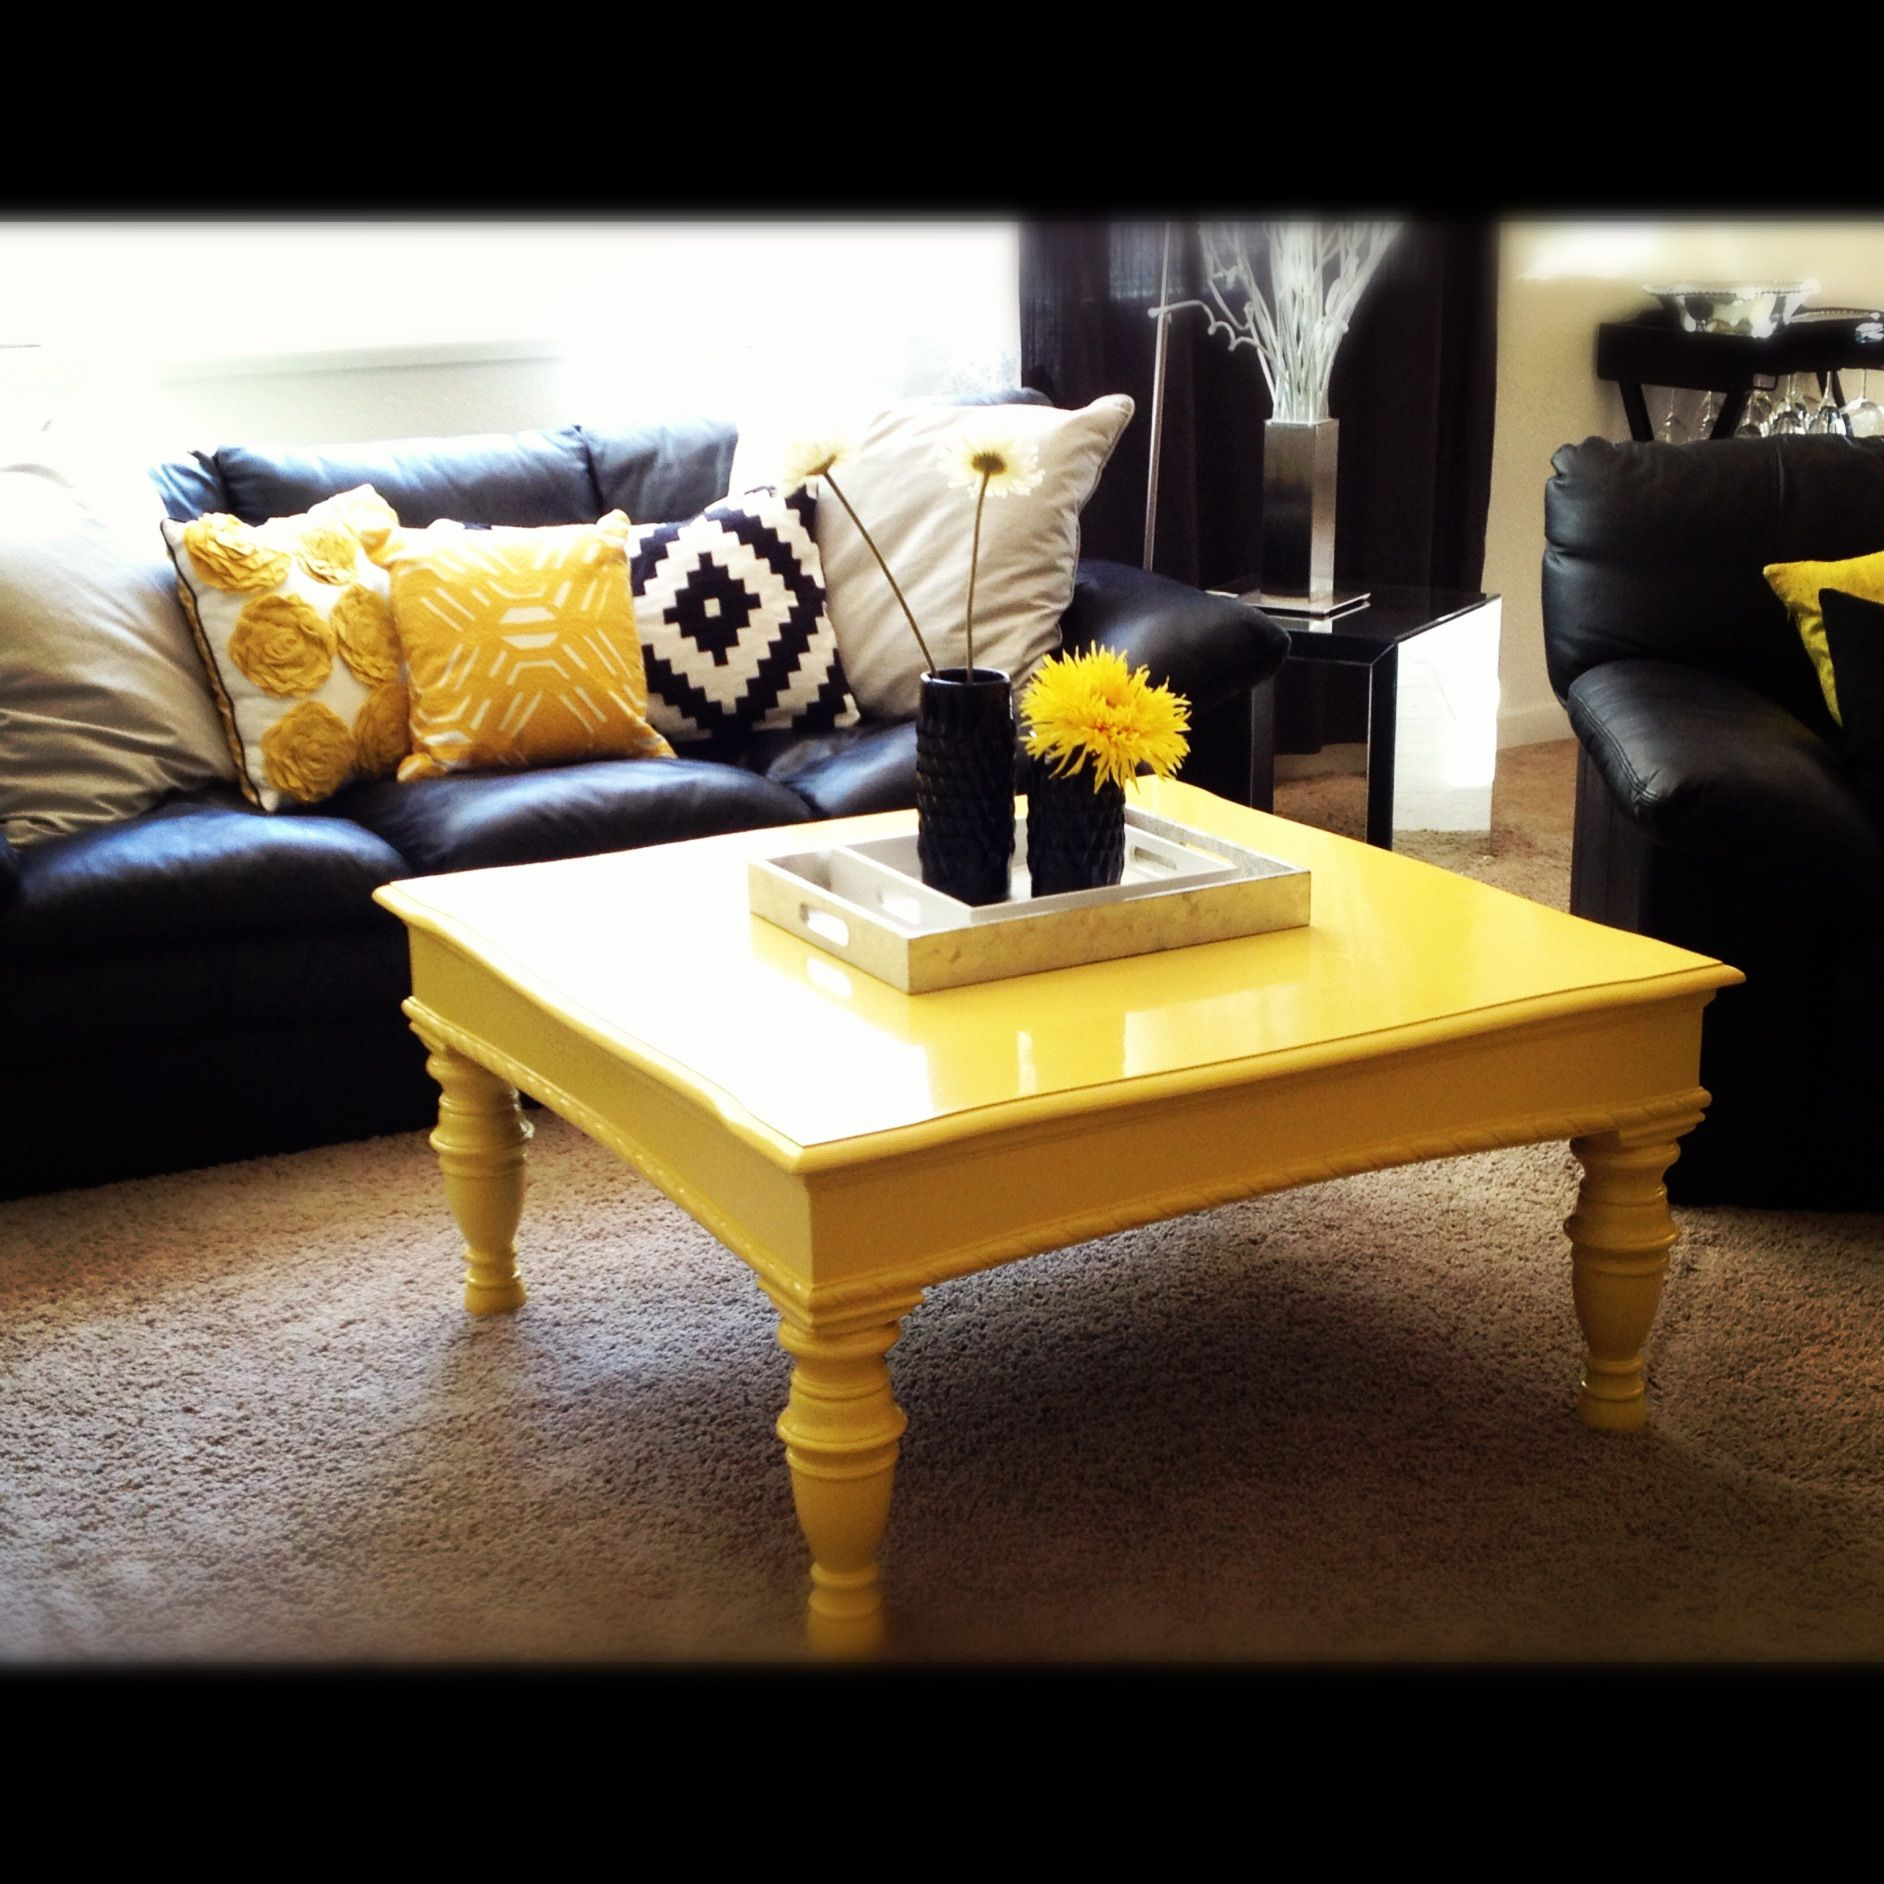 Best 25 Yellow Couch Ideas On Pinterest: Best 25+ Accent Pillows Ideas On Pinterest